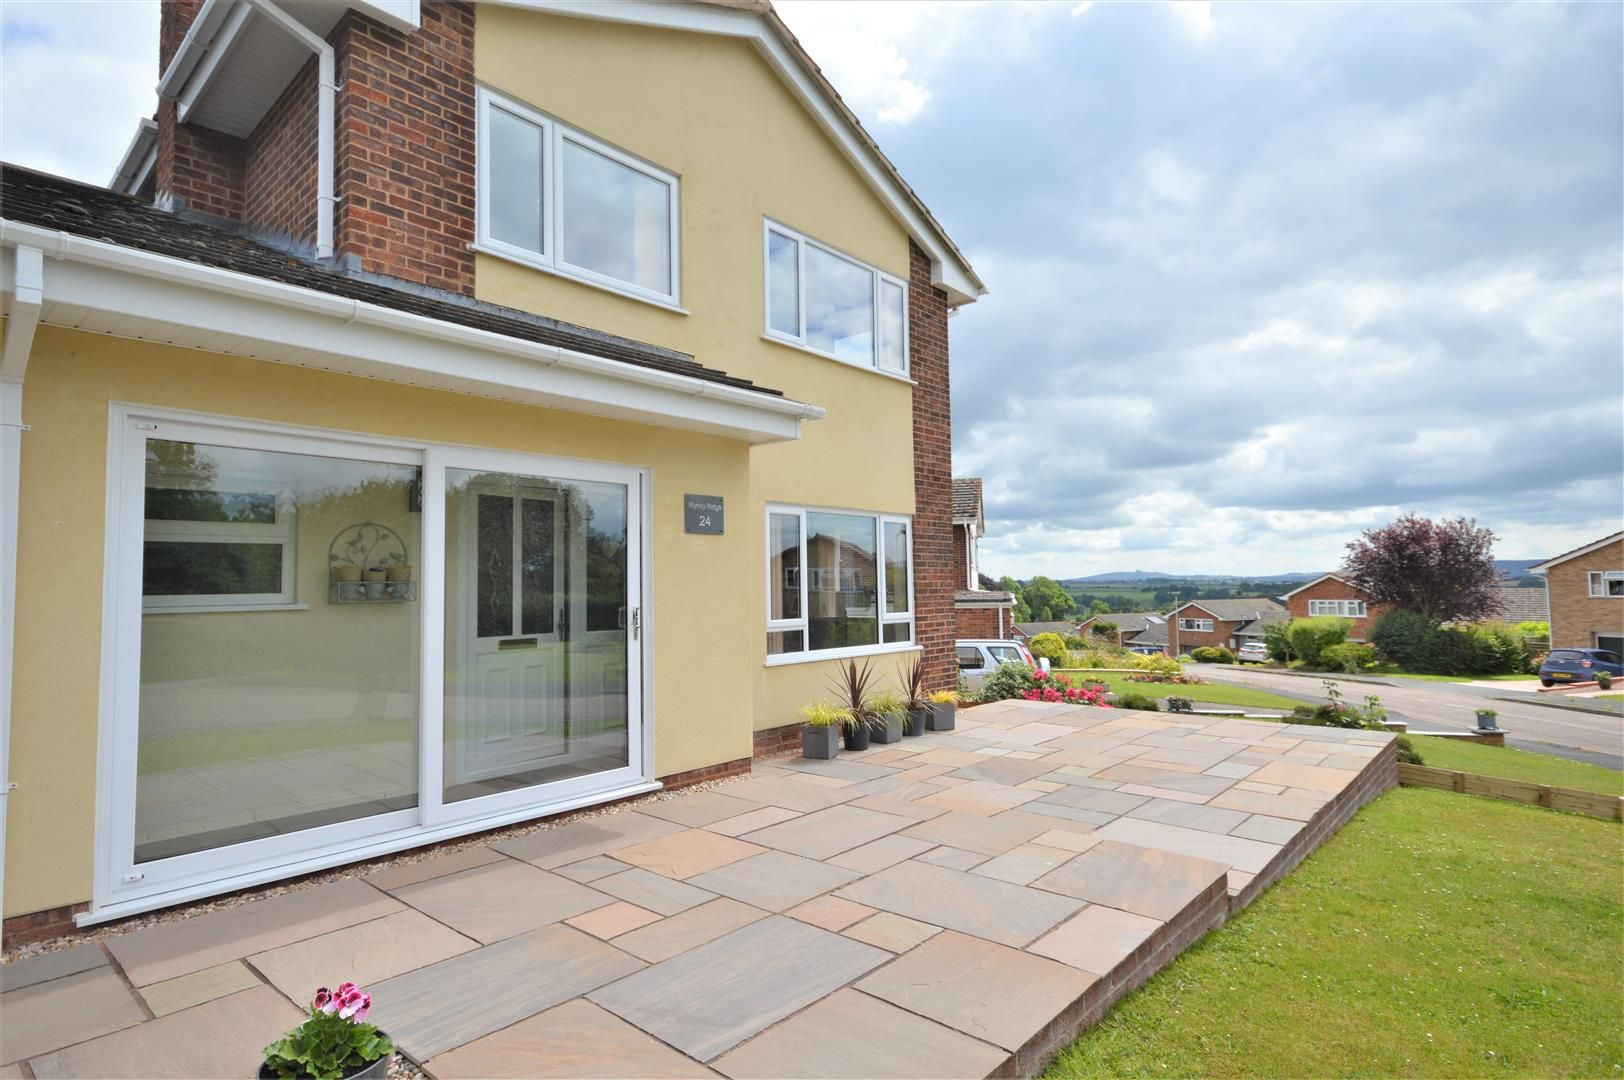 3 bed detached for sale in Kings Caple 2